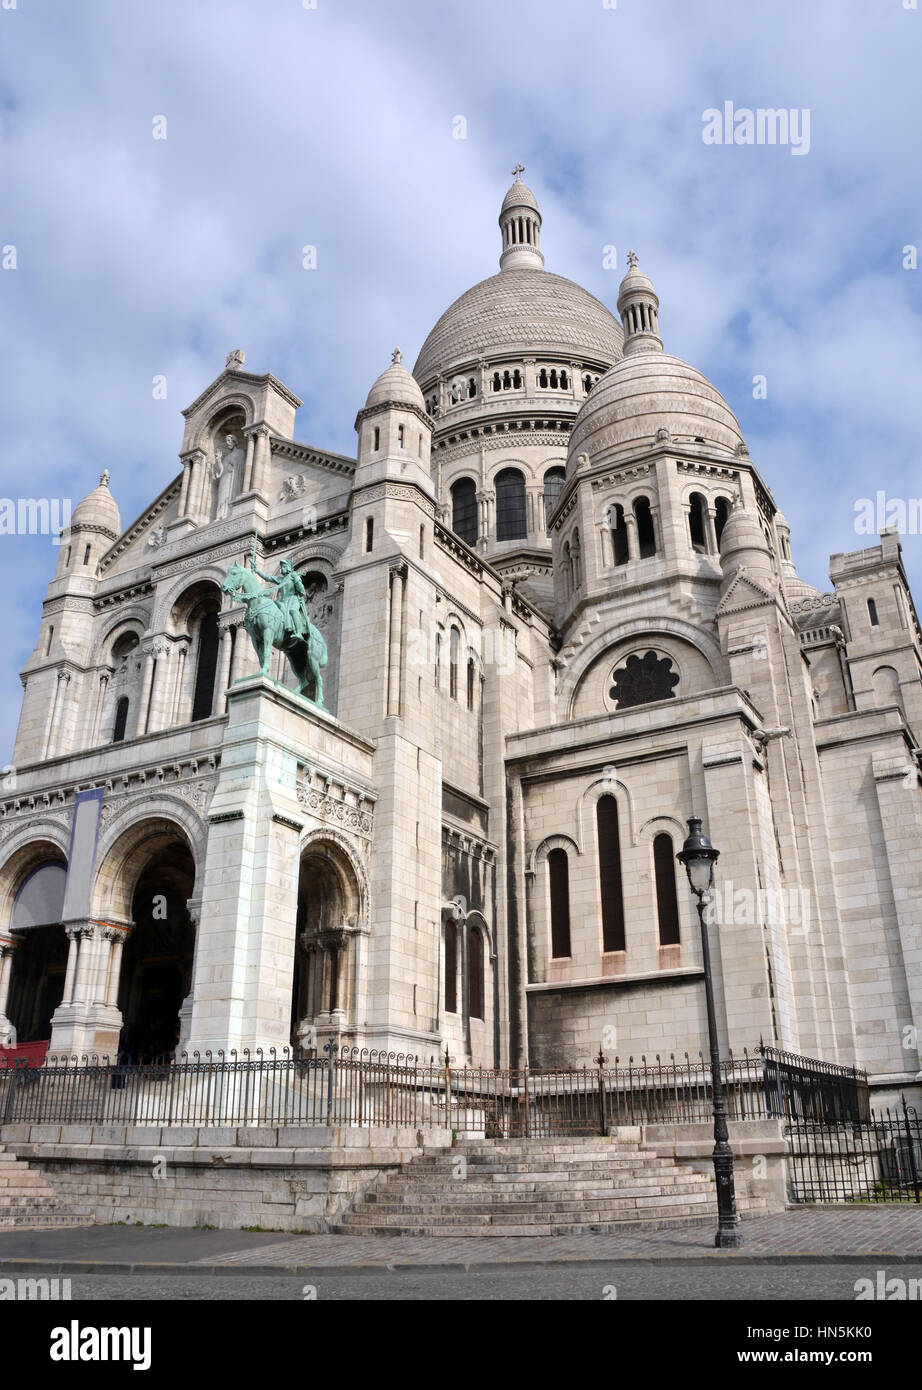 The Catholic church of Sacre Coeur at the top of  Montmartre District in Paris France. - Stock Image